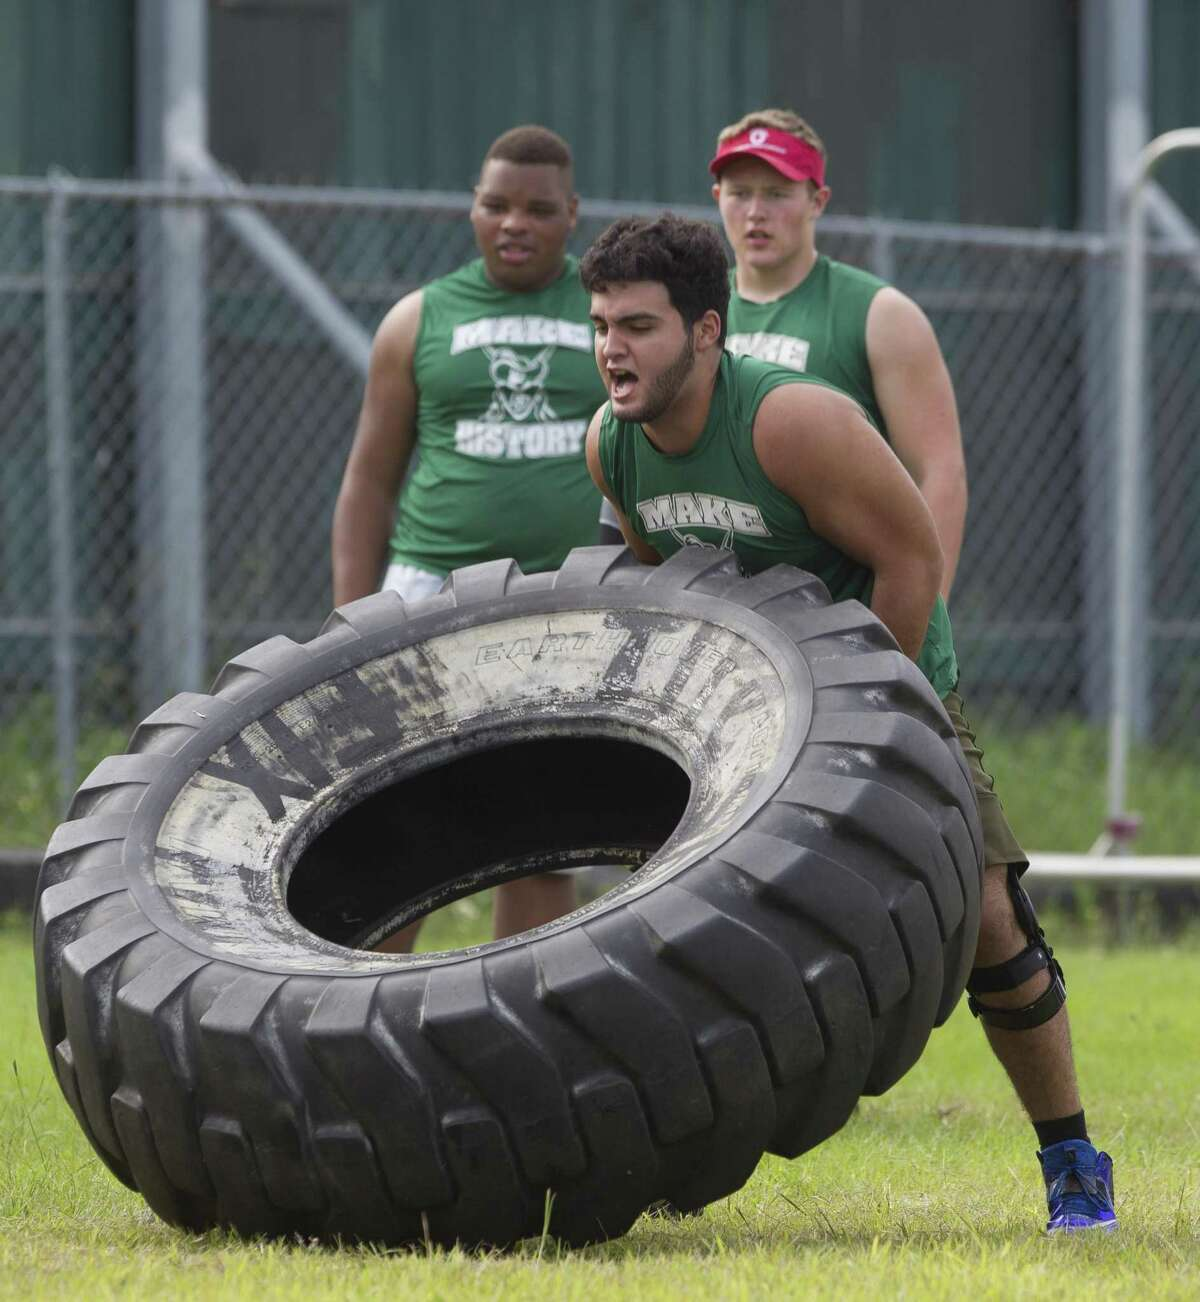 College Park's Mark Thompson competes in the annual War Zone Lineman Challenge at Oak Ridge High School on June 17, 2017.